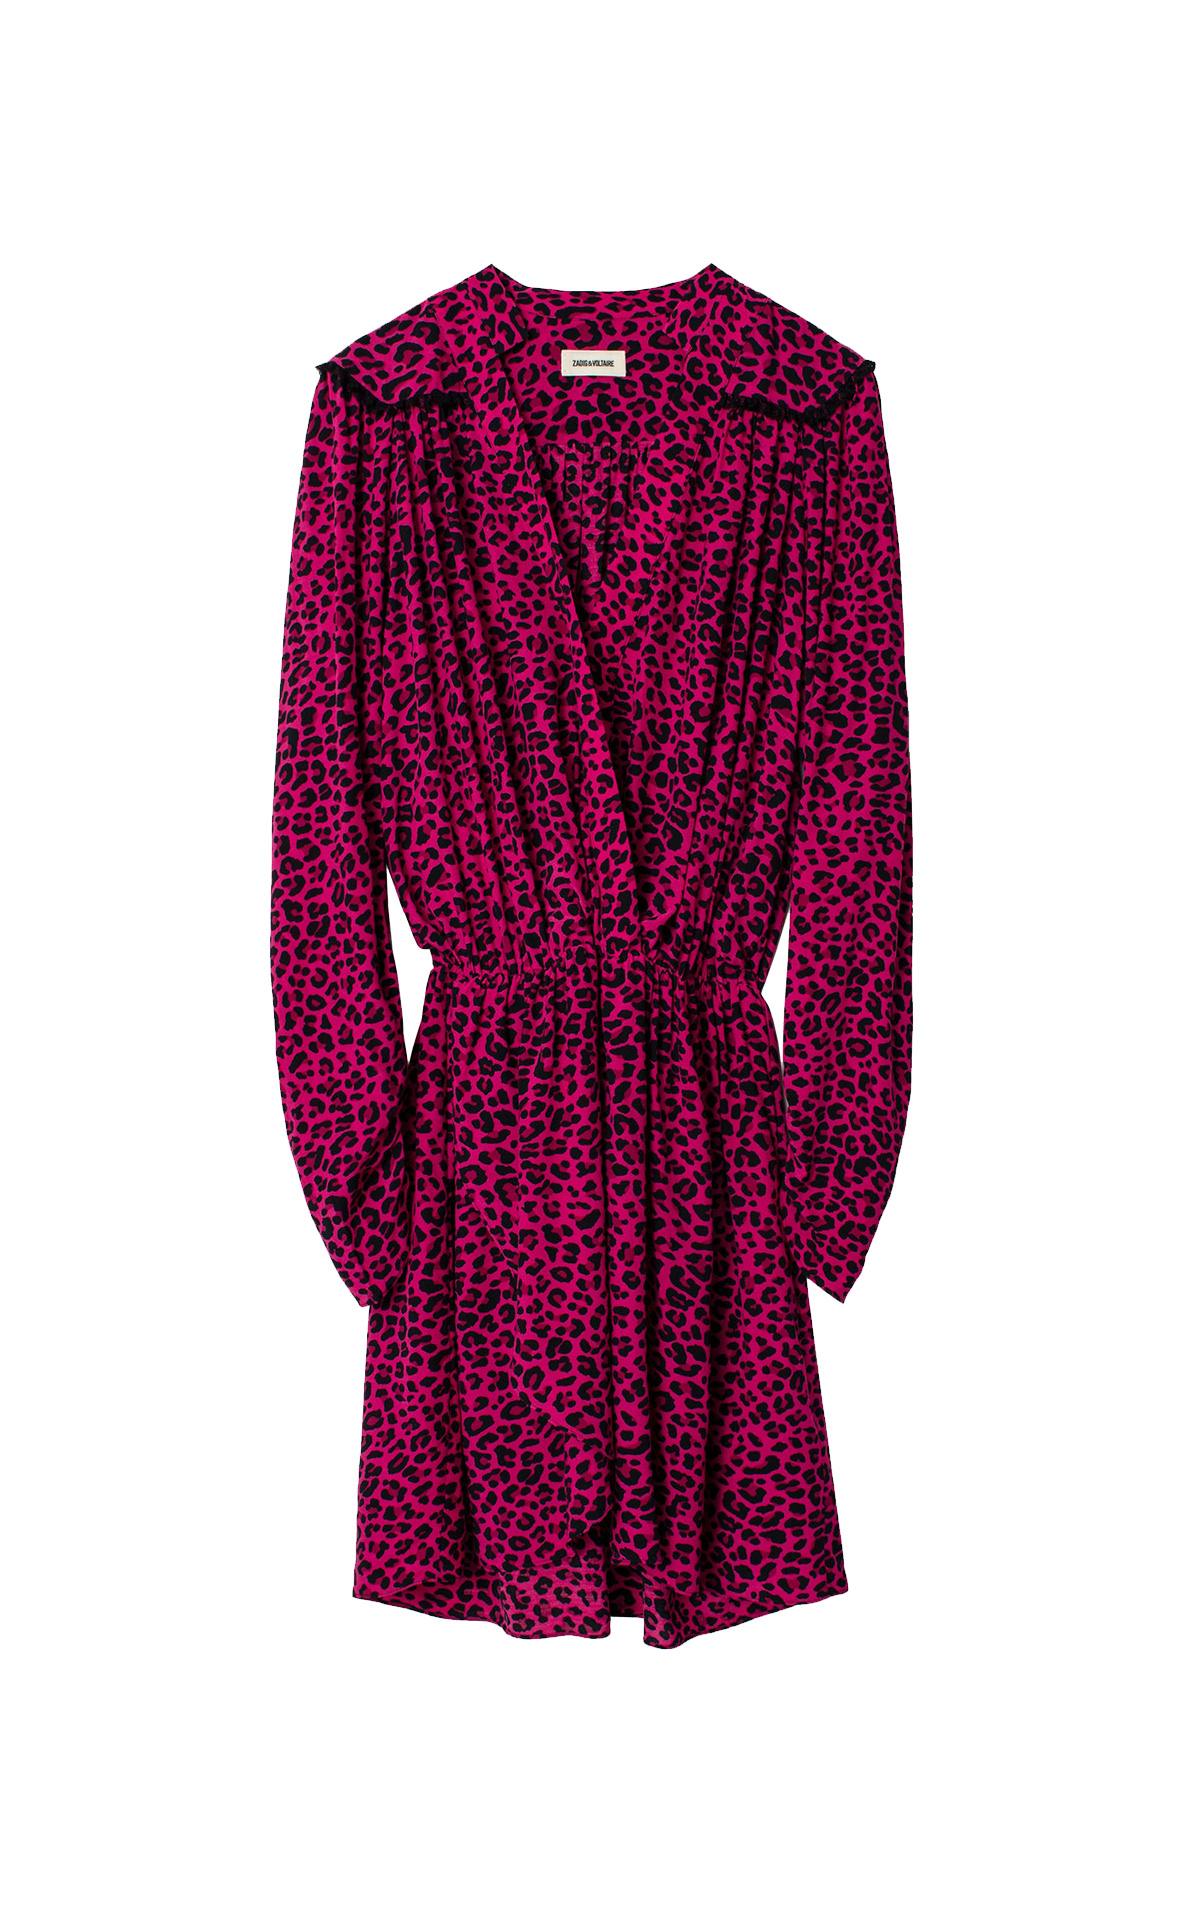 Printed dress Zadig & Voltaire